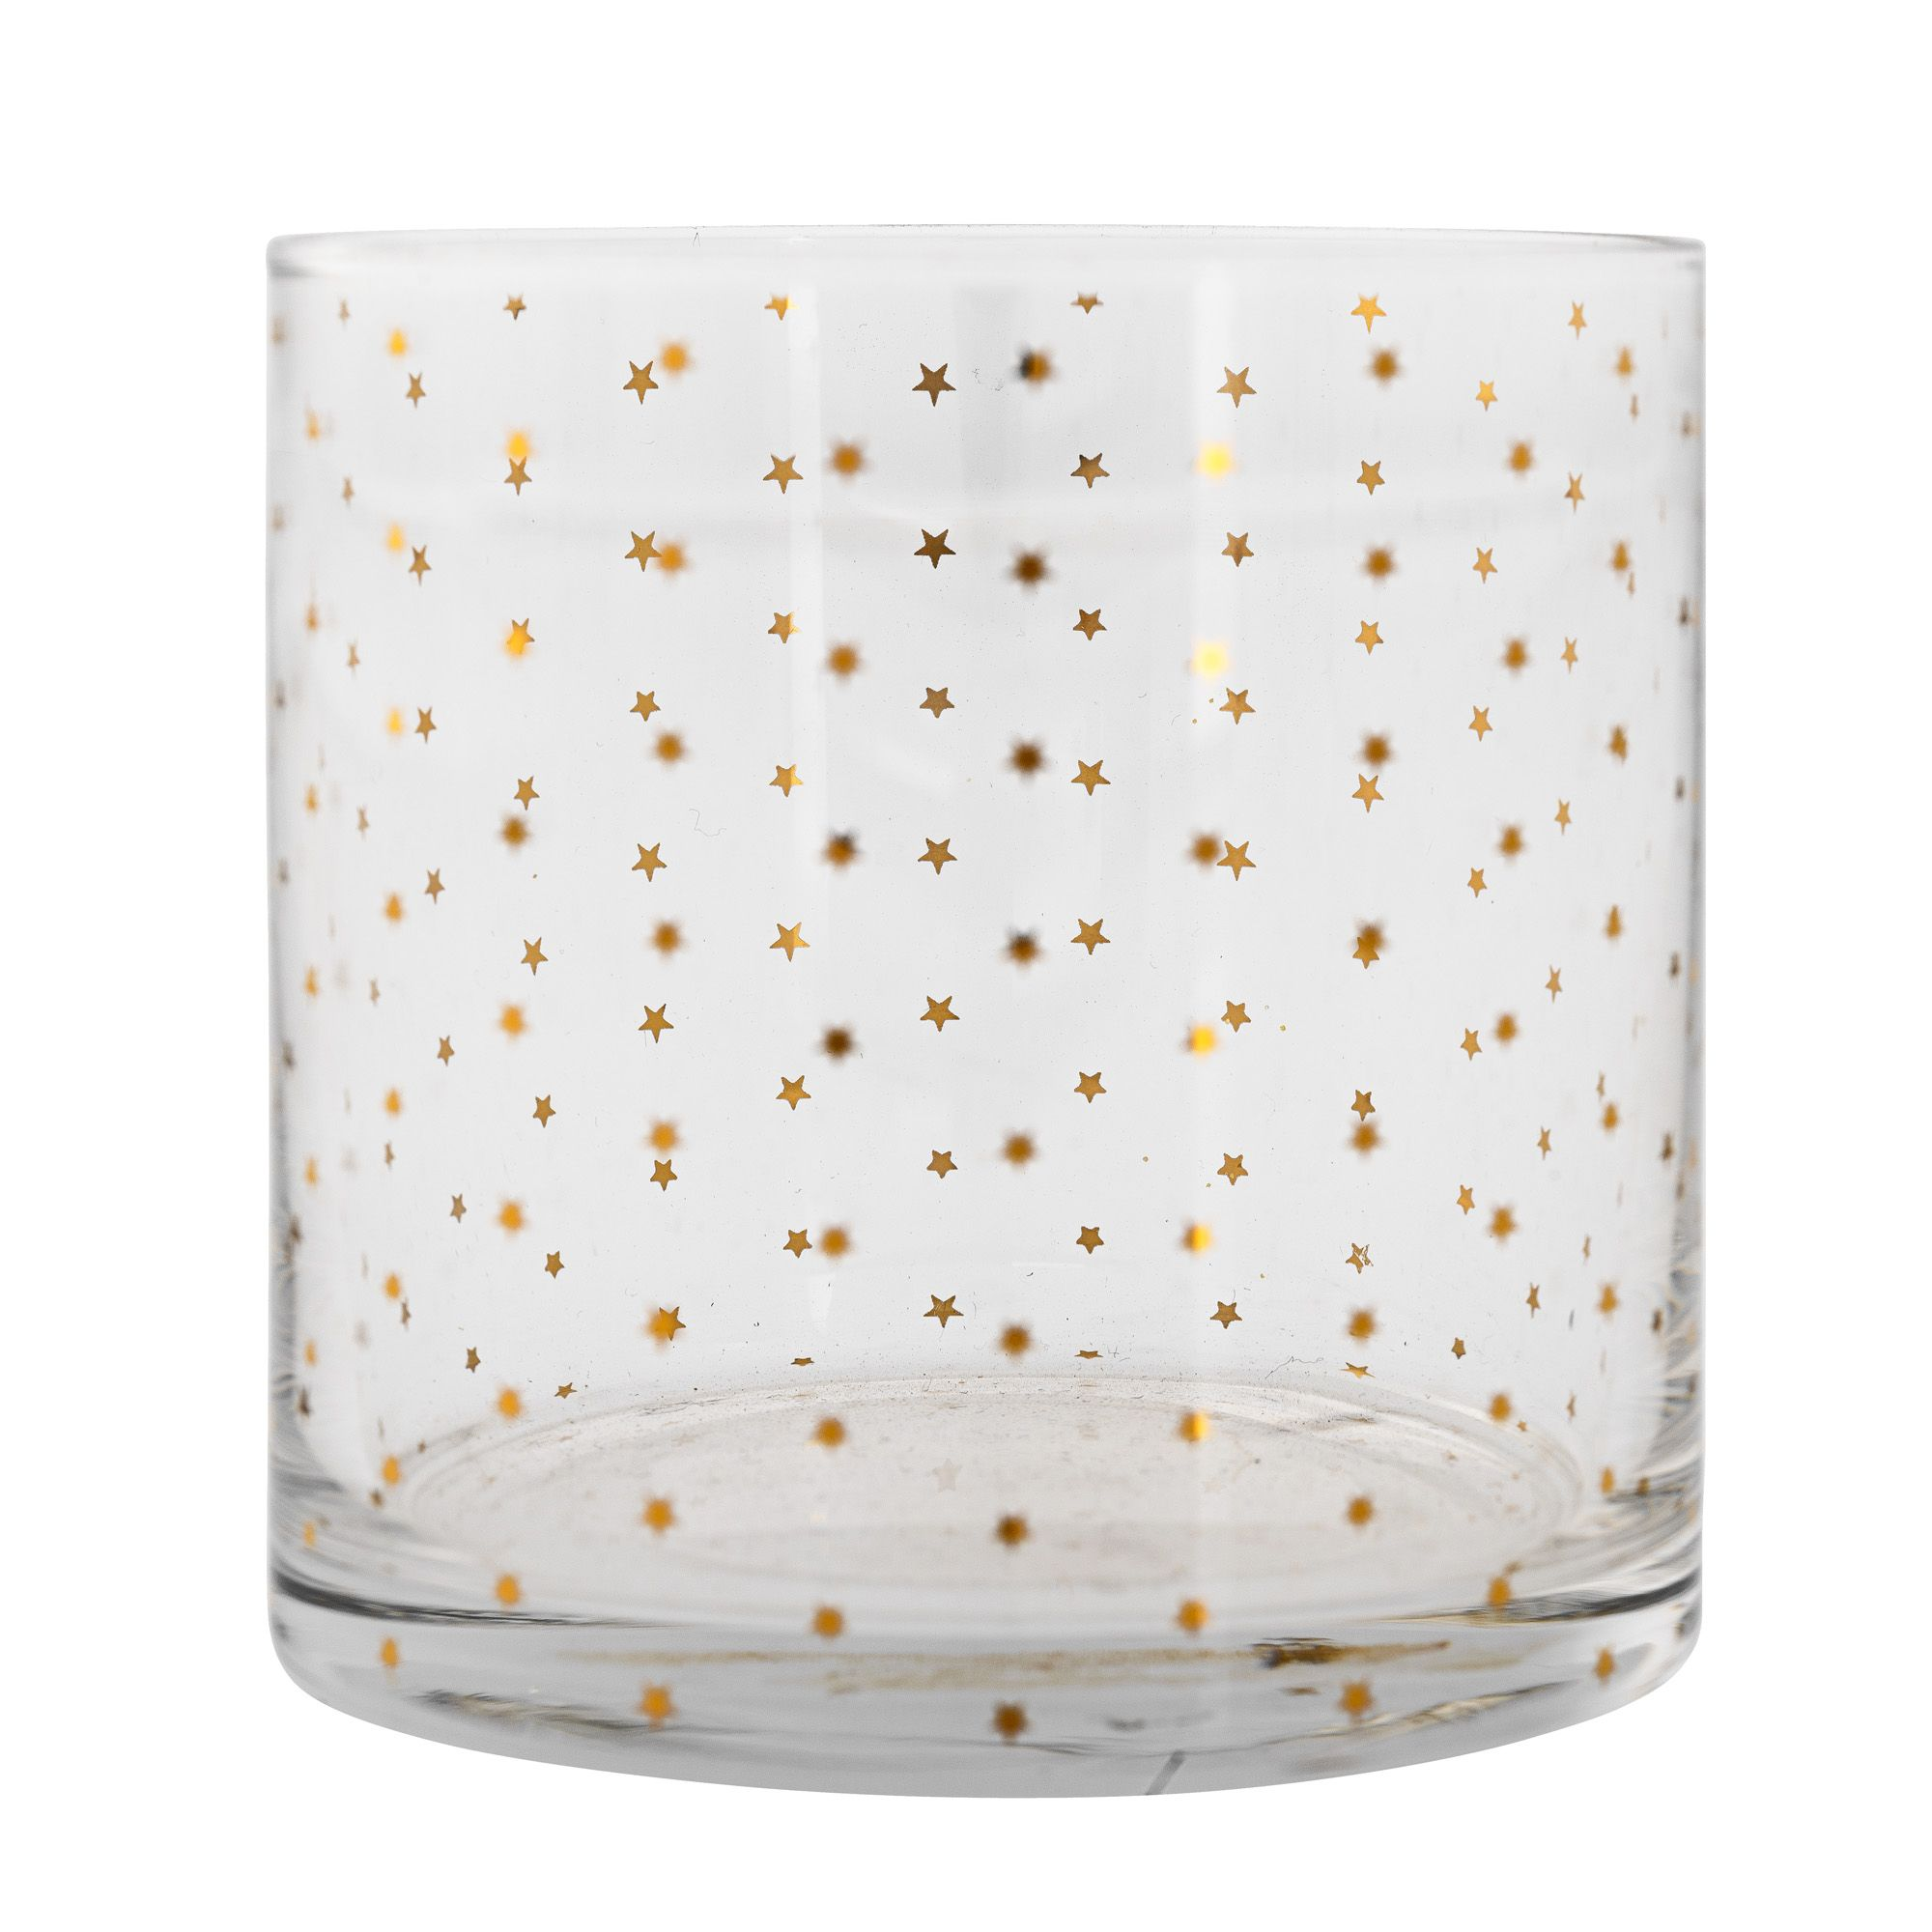 Image of Bloomingville Gold stars glass tumbler